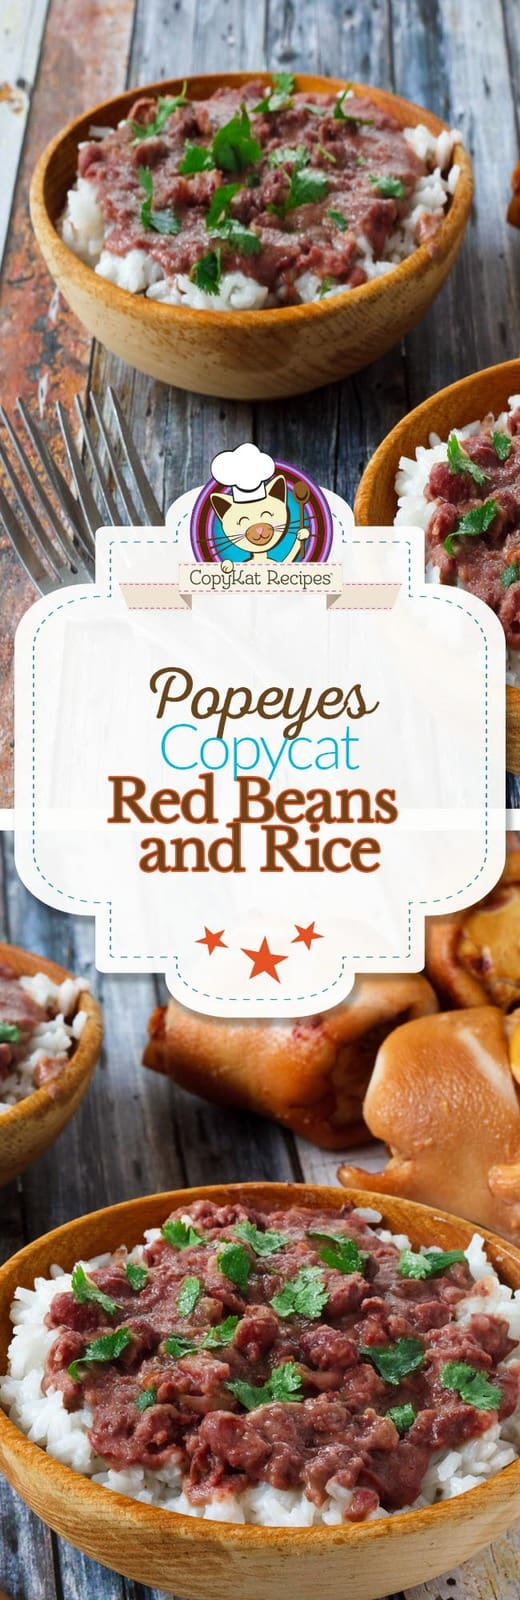 "Oct 20,  · Trust me if you enjoy Popeye's Spicy Chicken you are going to fall in love with this recipe for Copycat Popeye's Spicy Fried Chicken. On Popeye's web page it says, ""Over forty years ago in New Orléans, Louisiana, a taste sensation was born.5/5(3)."